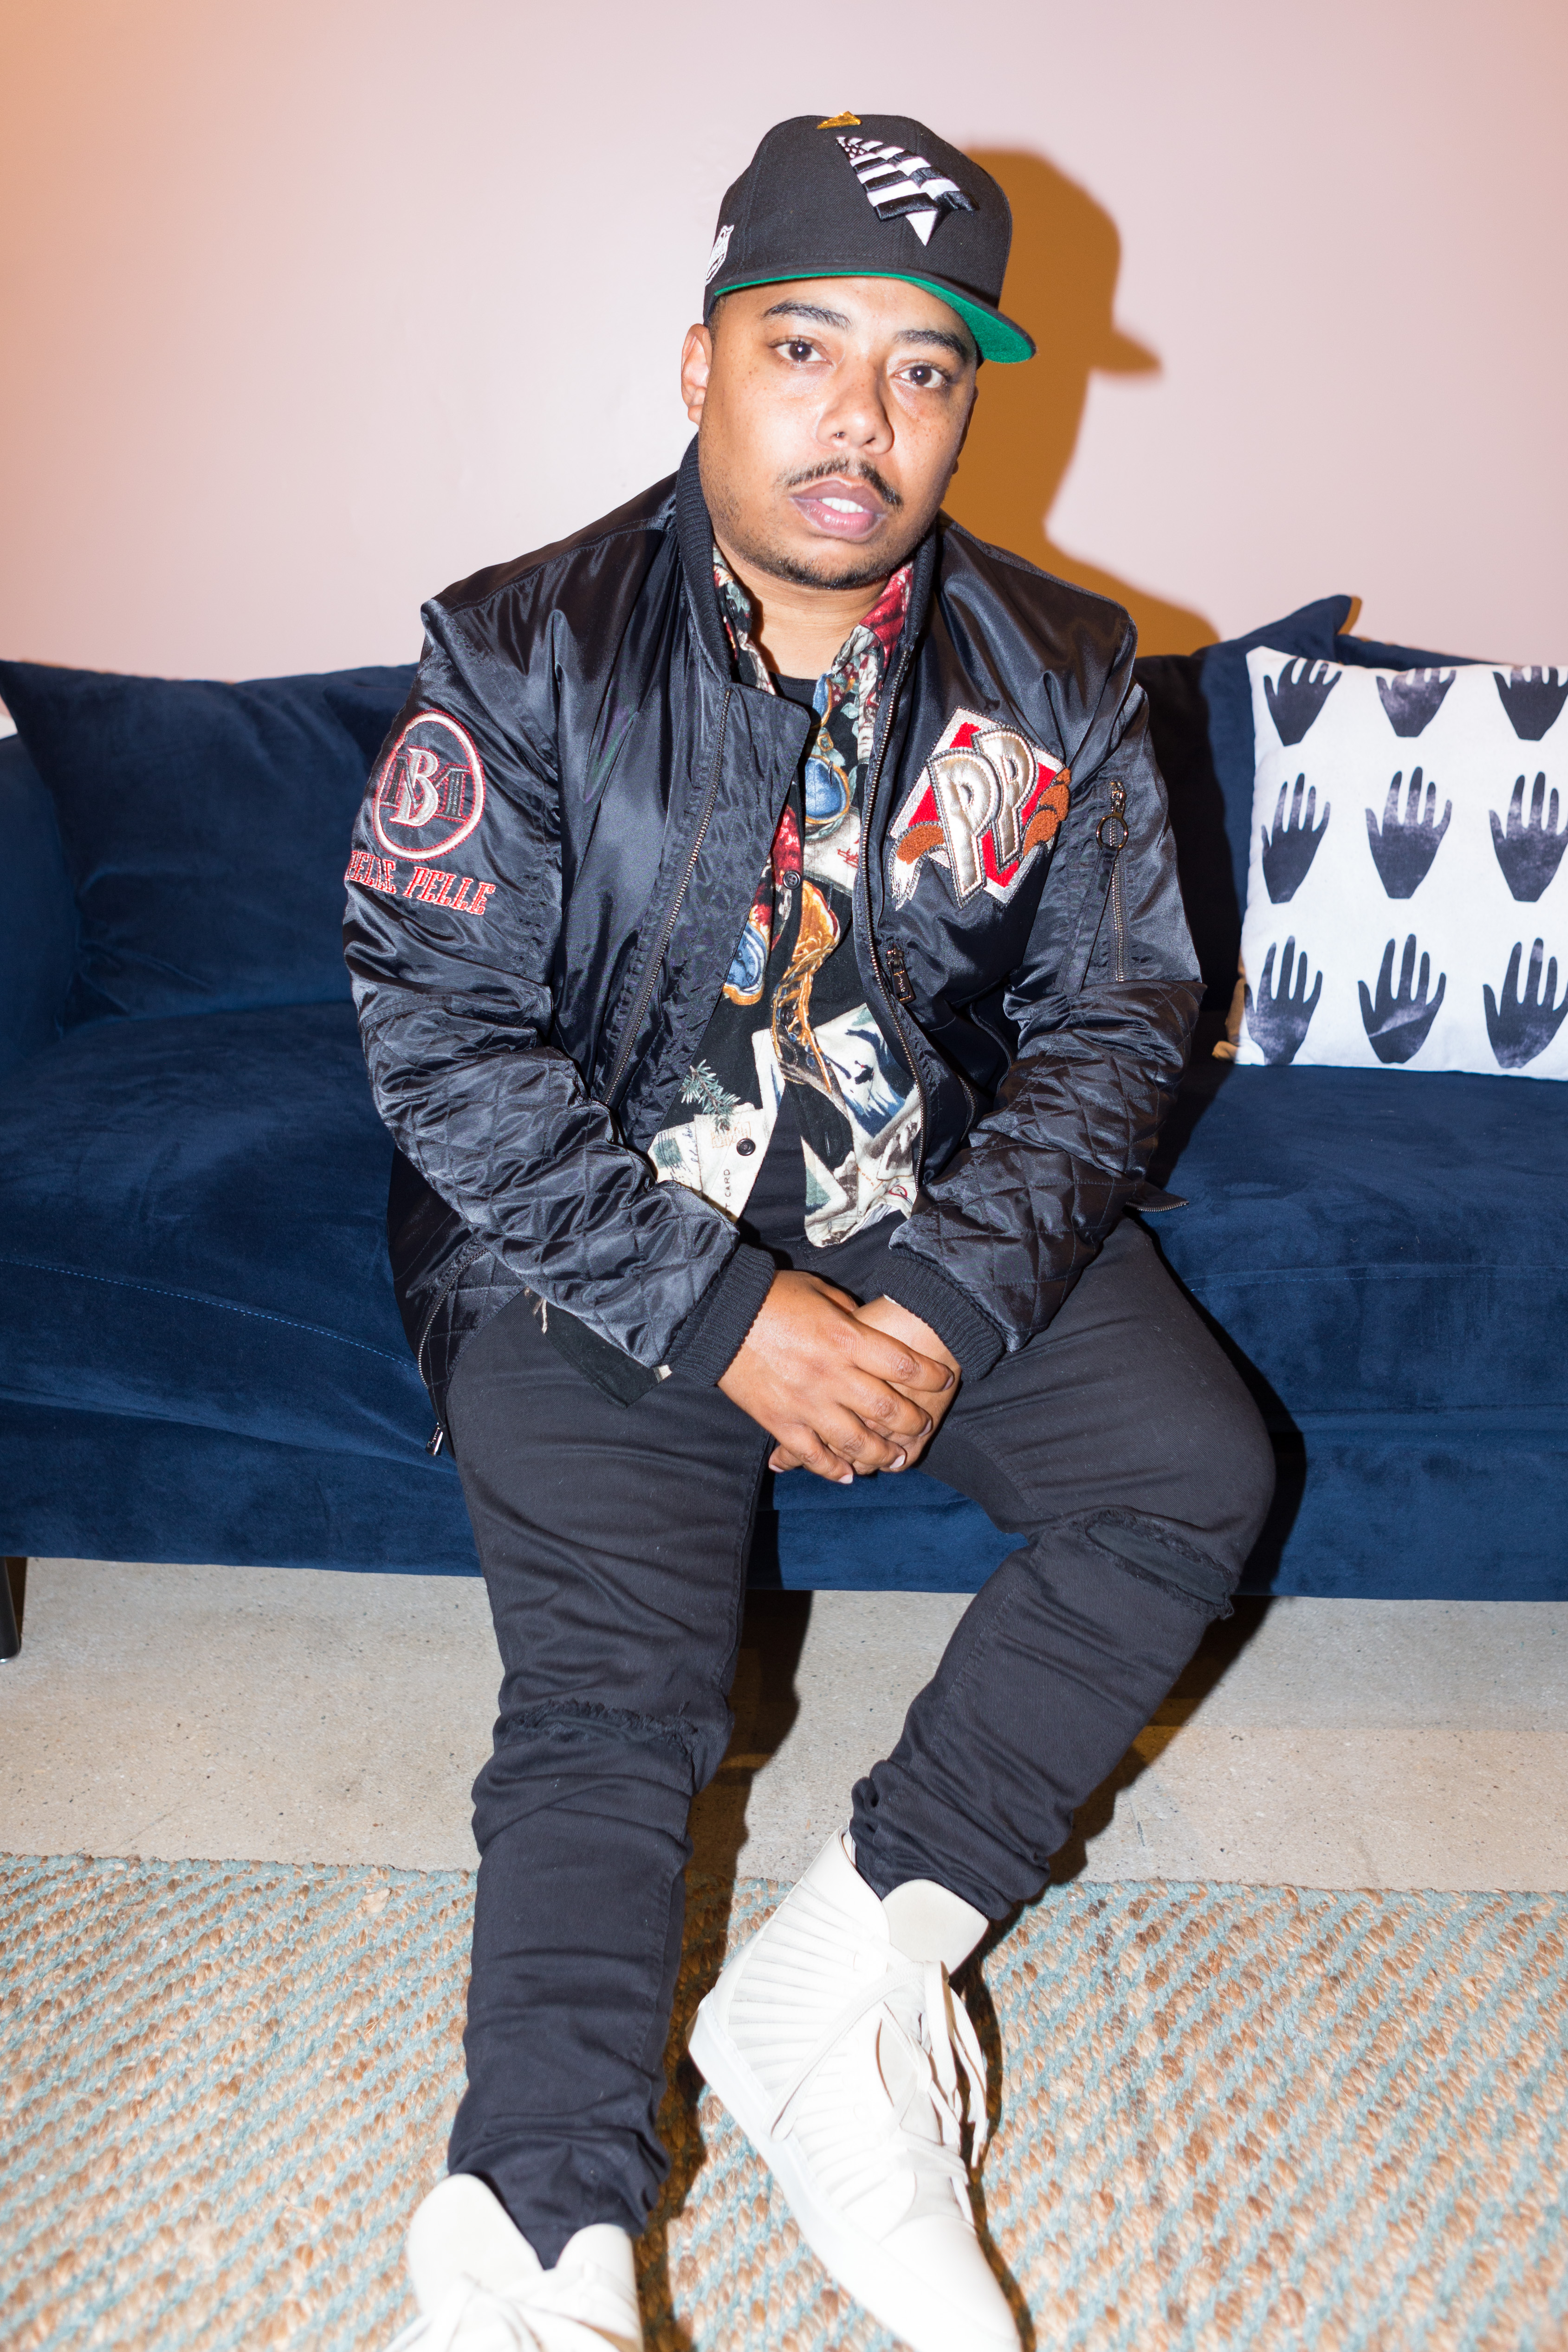 Manolo Rose Talks Getting His Start In Music, Hip-Hop's Great Impact, Fashion & More w/ 'Pelle Pelle' (VIDEO)